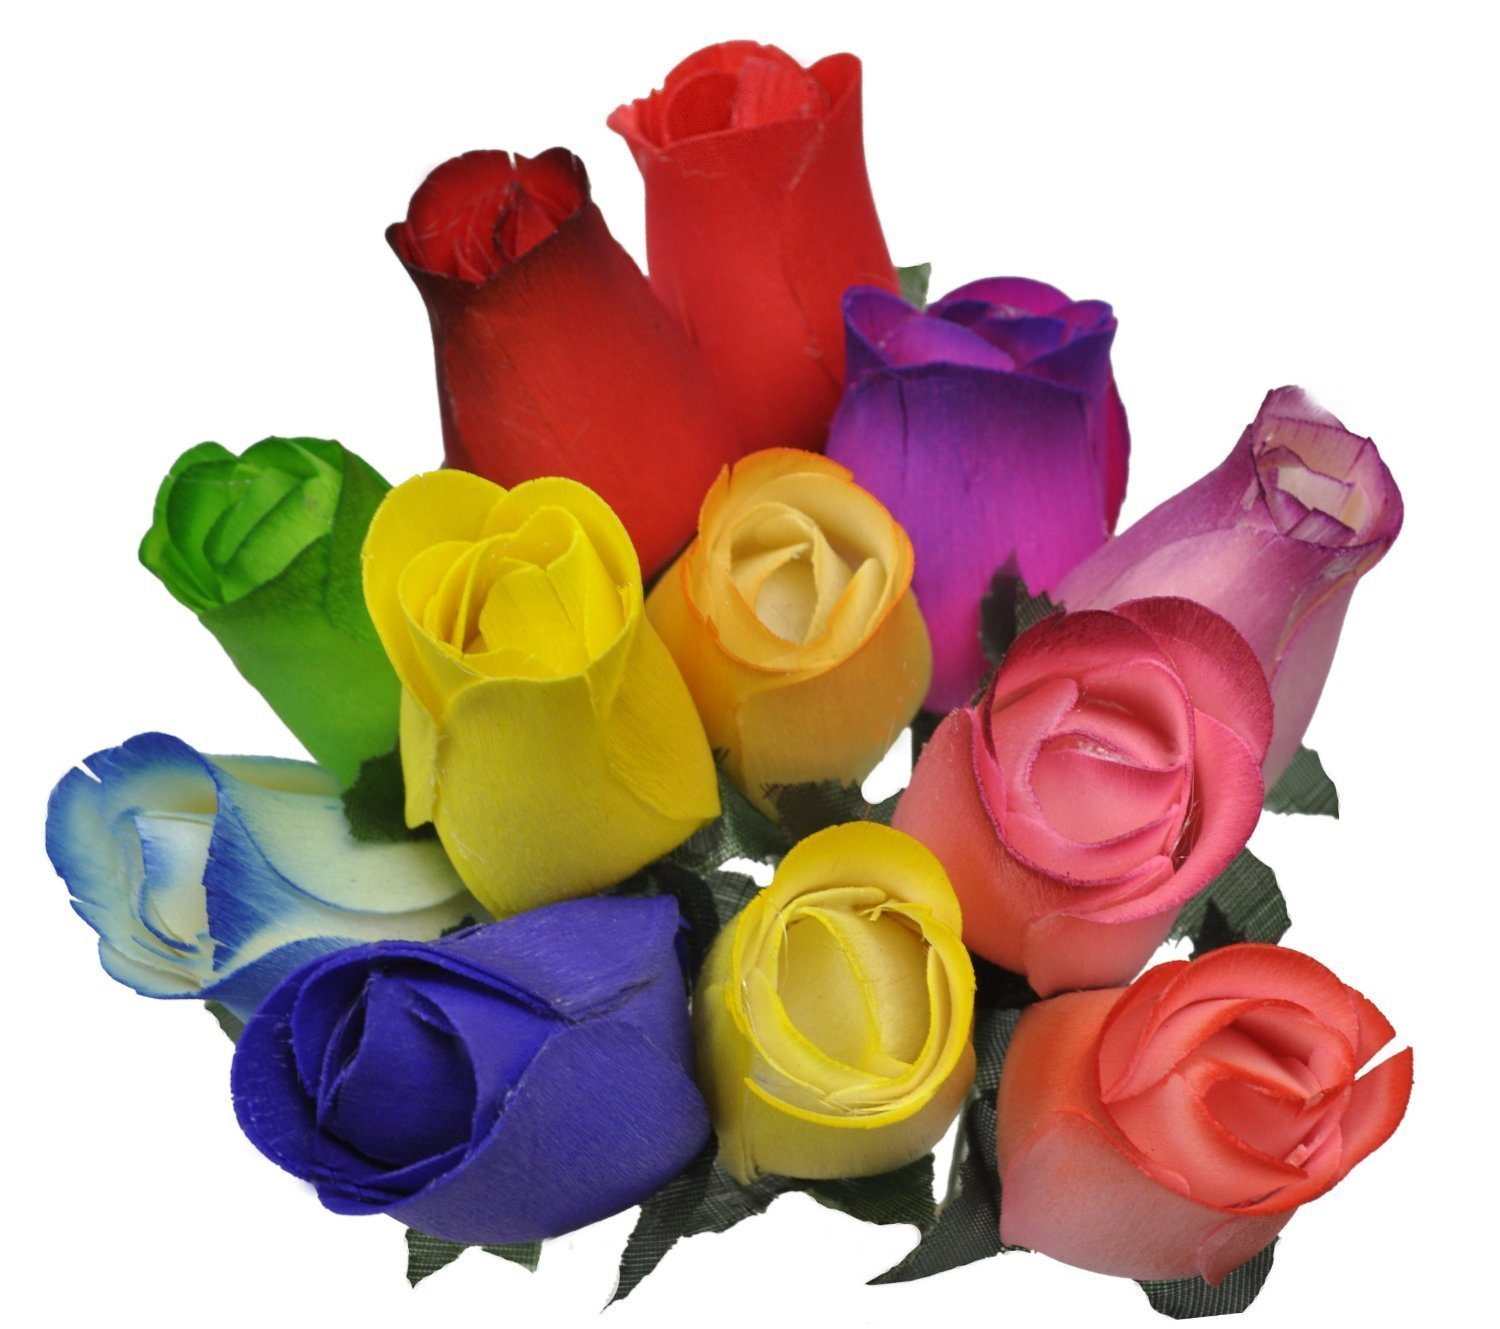 Amazon 2 dozen 24 wooden roses colorful arrangement in sleeve amazon 2 dozen 24 wooden roses colorful arrangement in sleeve home kitchen izmirmasajfo